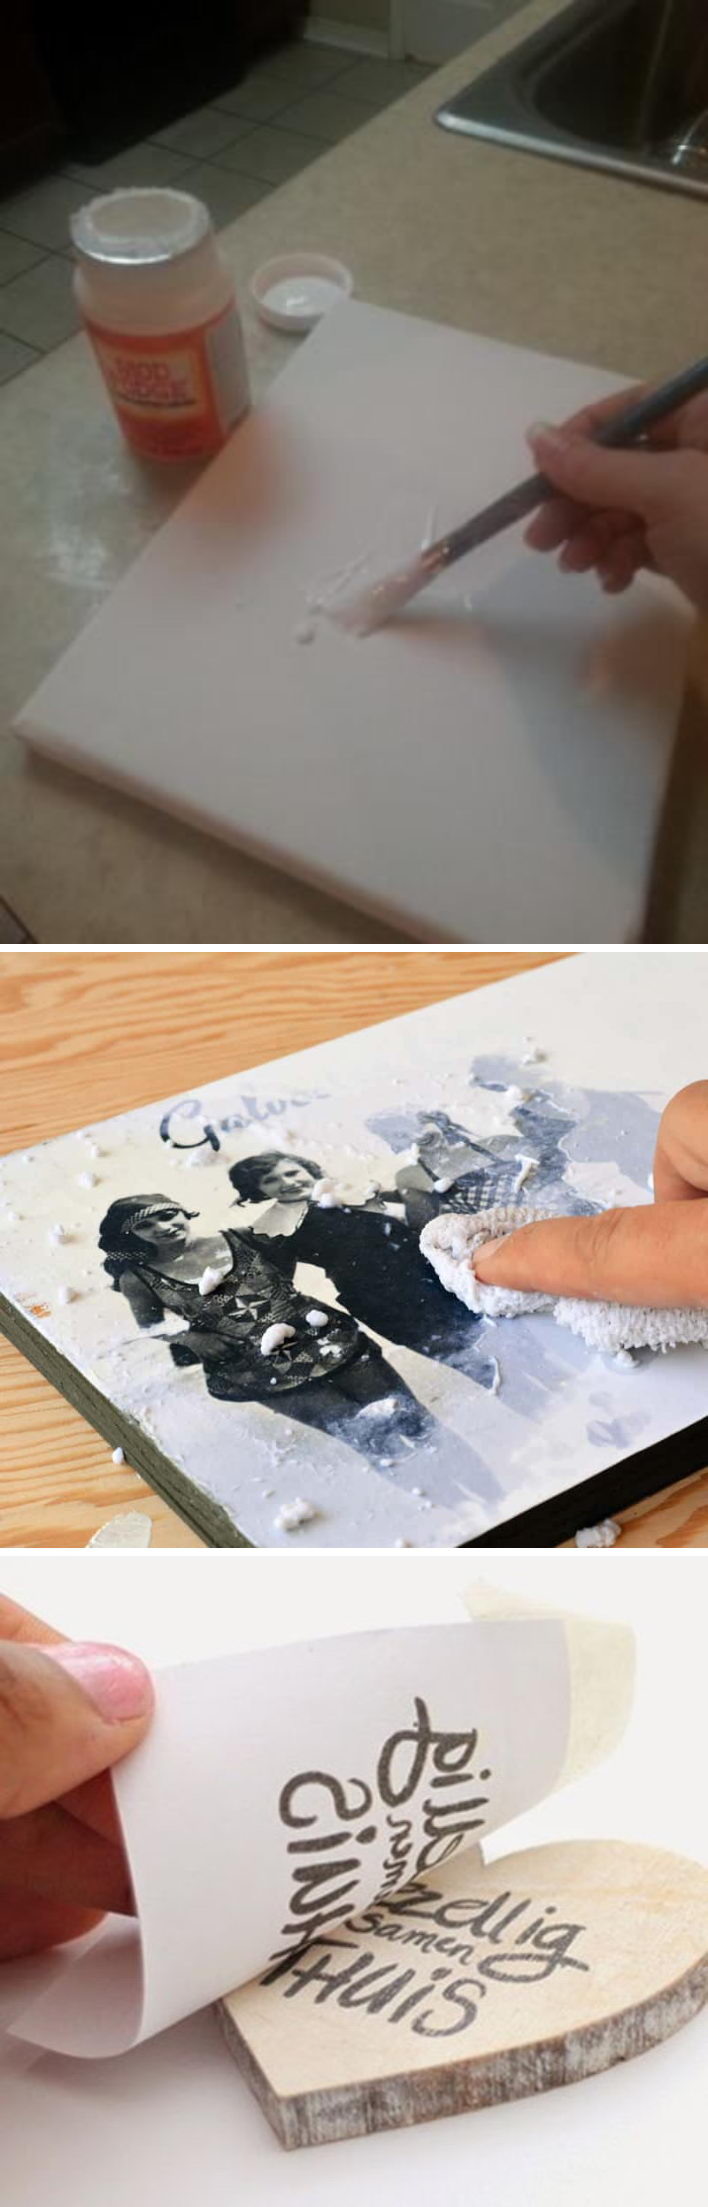 DIY Ideas & Tutorials for Photo Transfer Projects.